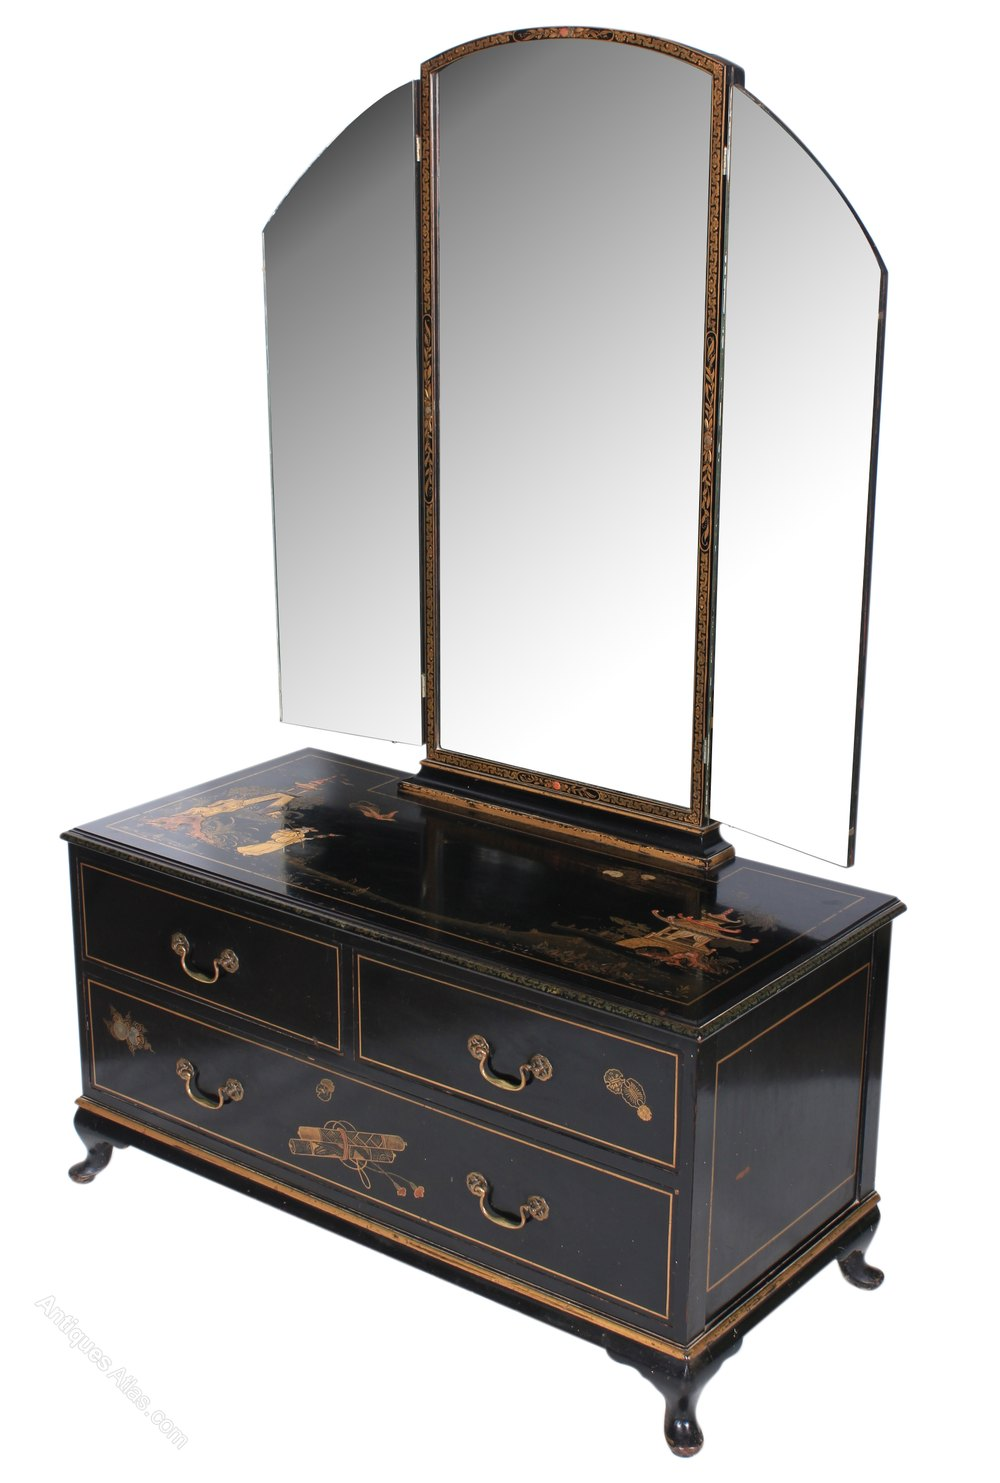 Antiques atlas louis dressing table - Dari Black High Gloss Double Dressing Table